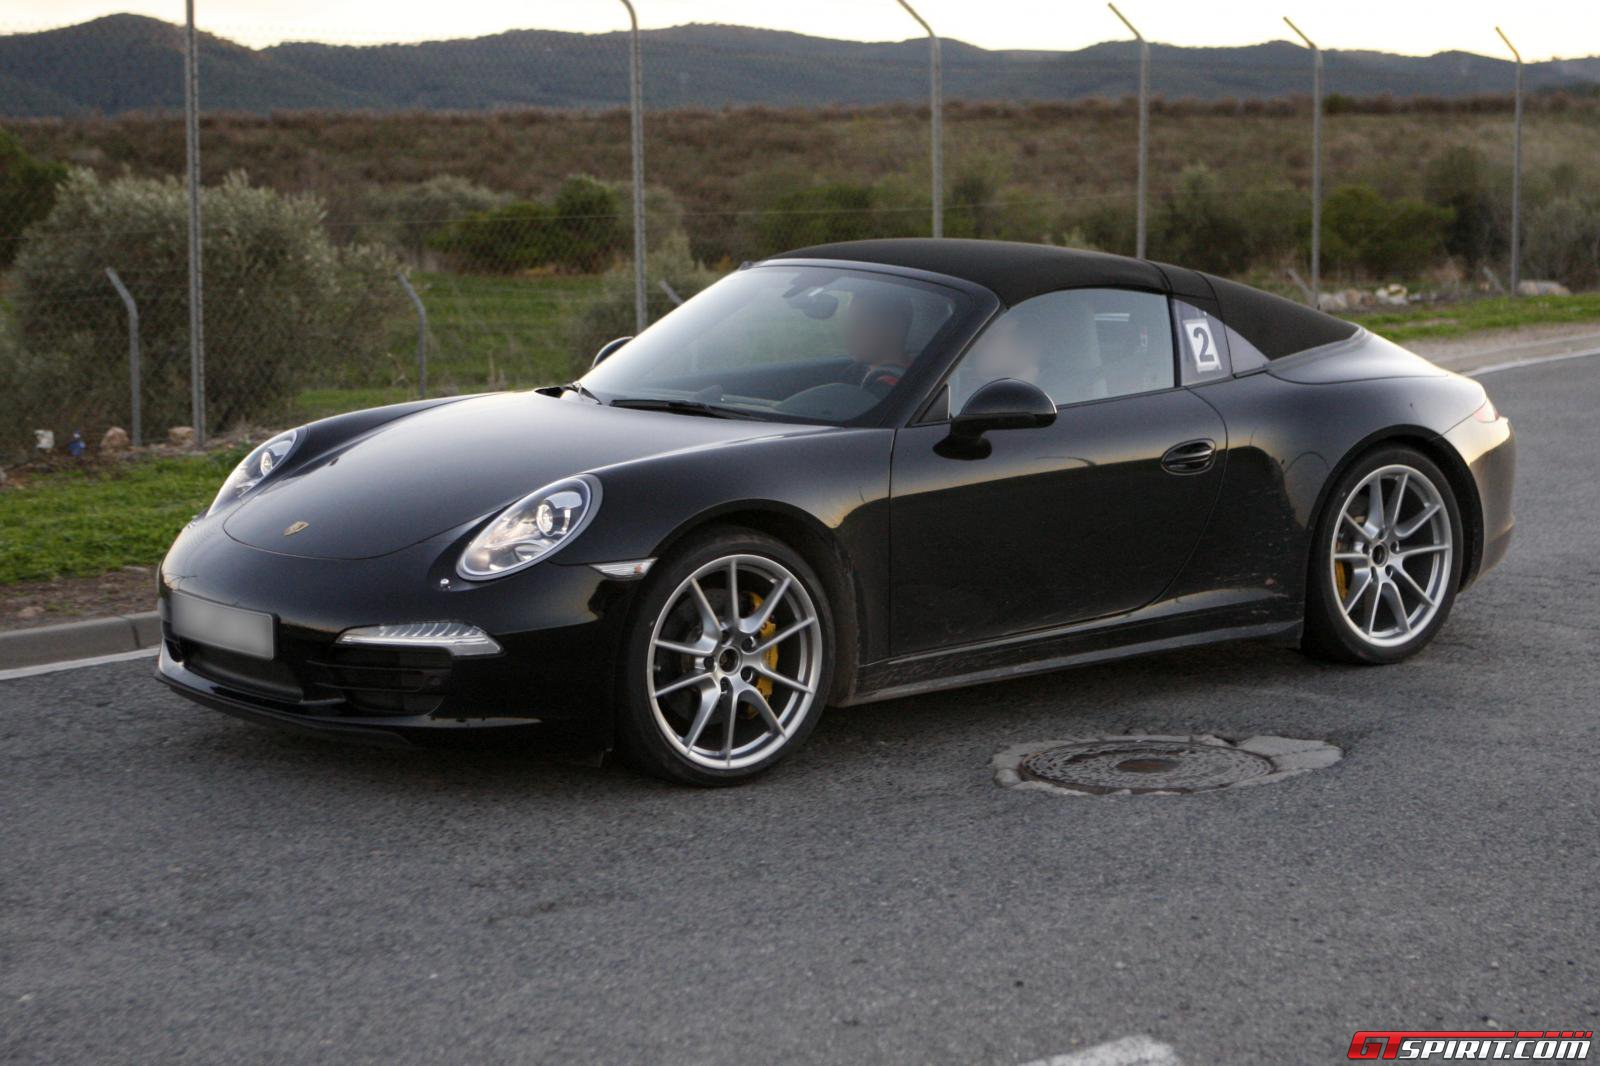 new car spirit 2013 porsche 991 targa spyshot photos. Black Bedroom Furniture Sets. Home Design Ideas